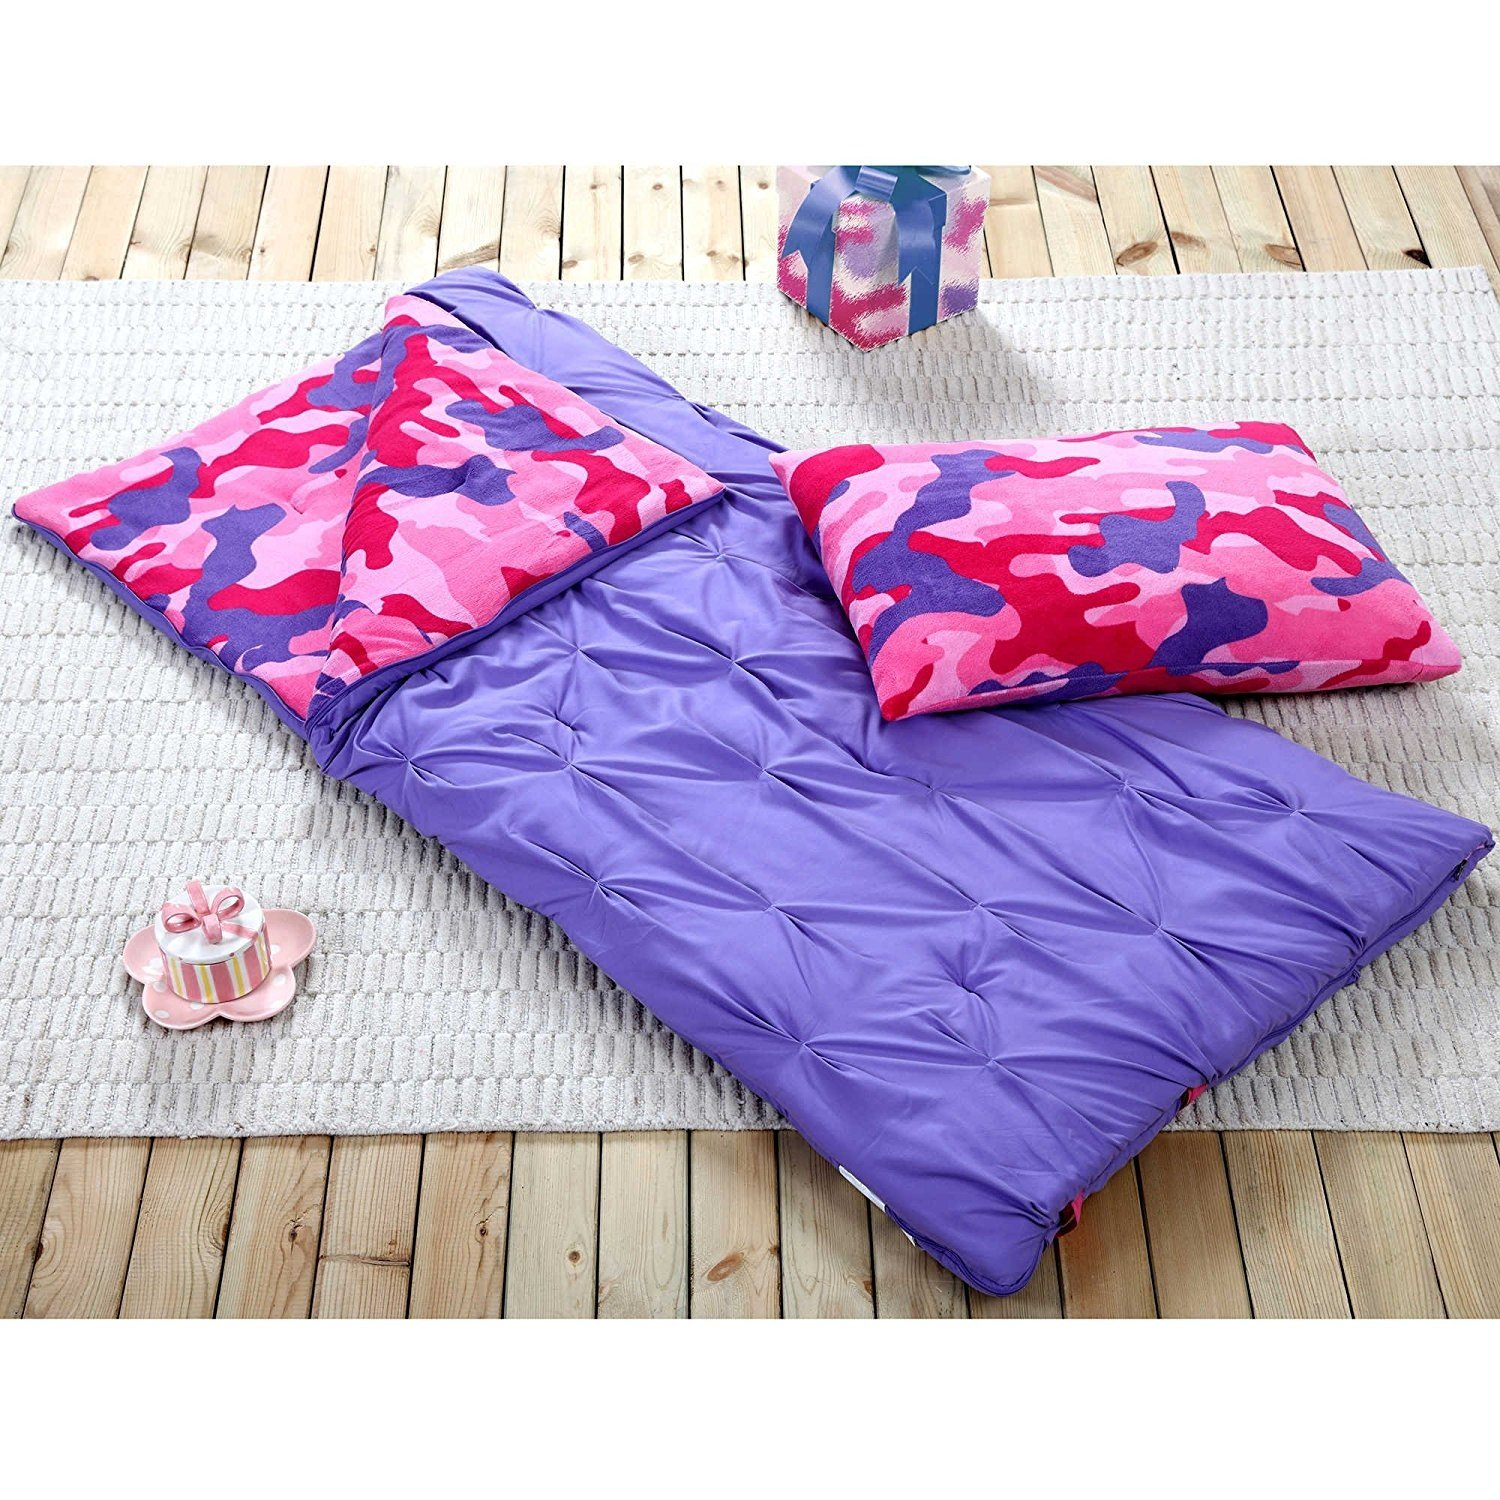 (Pink and Purple Camo) - Sleeping Bag and Pillow Cover, Purple Pink Camo Indoor Outdoor Camping Youth Kids Girls B073H555NR Pink and Purple Camo Pink and Purple Camo